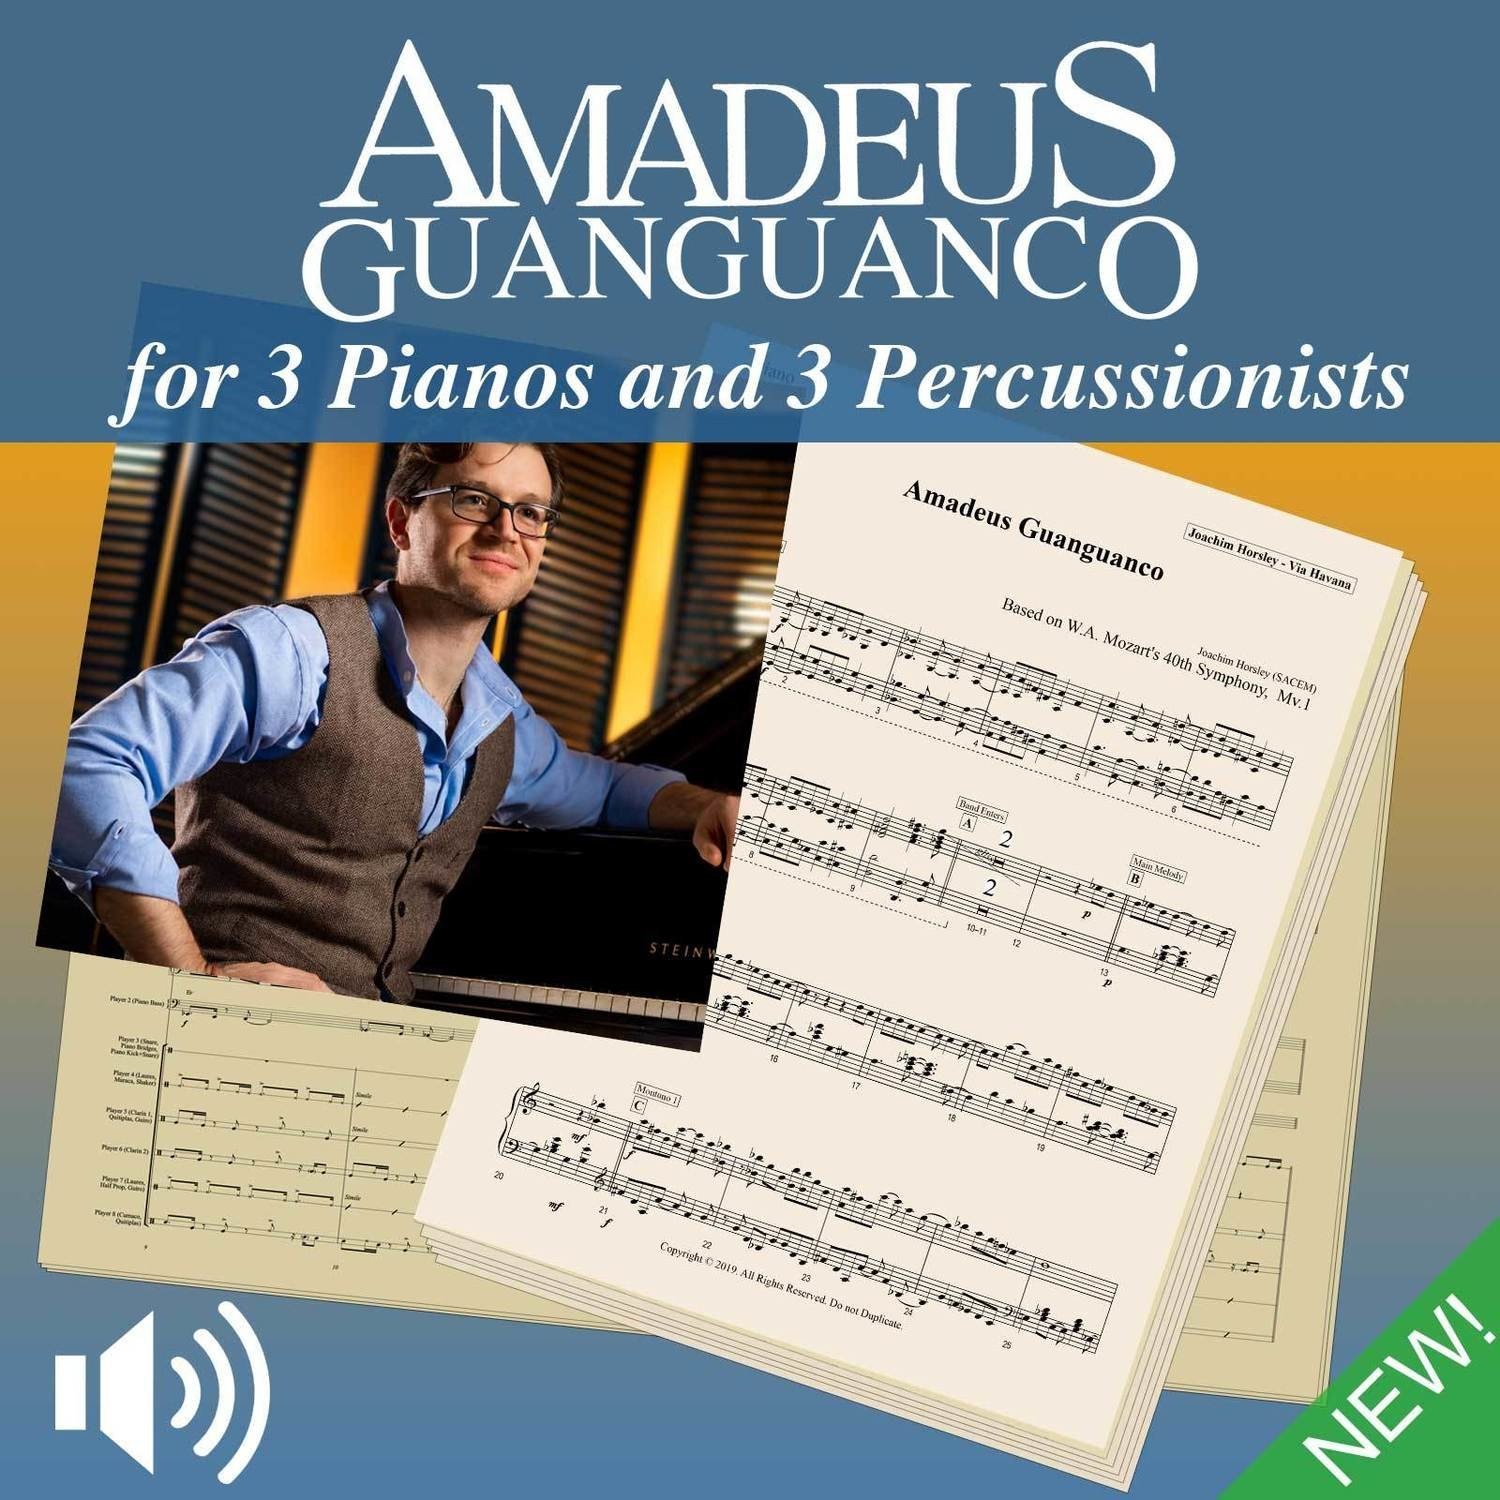 Amadeus Guanguanco - Score and Parts (and play-along audio)